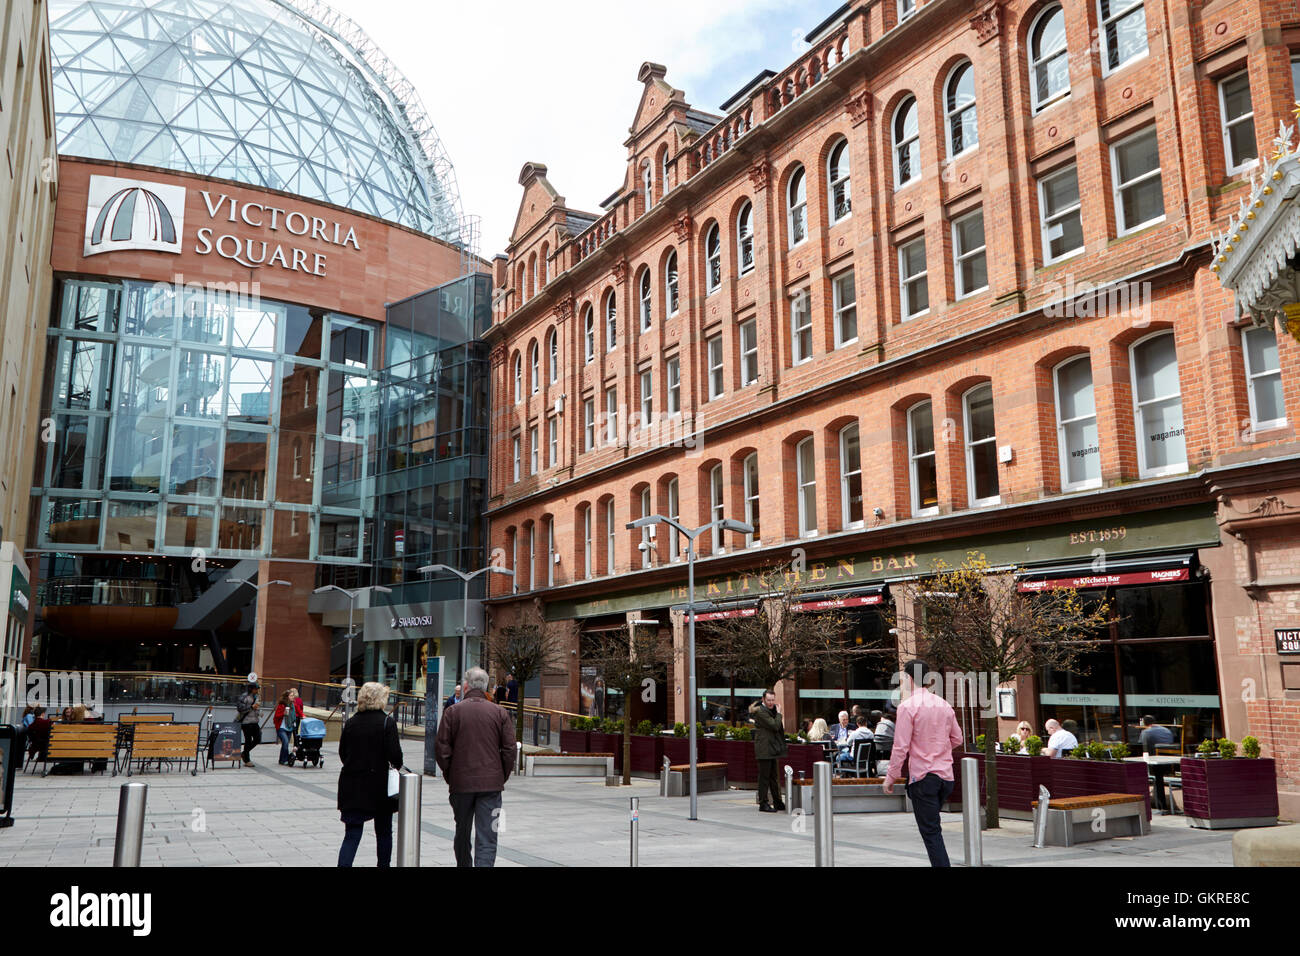 victoria square shopping centre and the kitchen bar belfast city centre - Stock Image